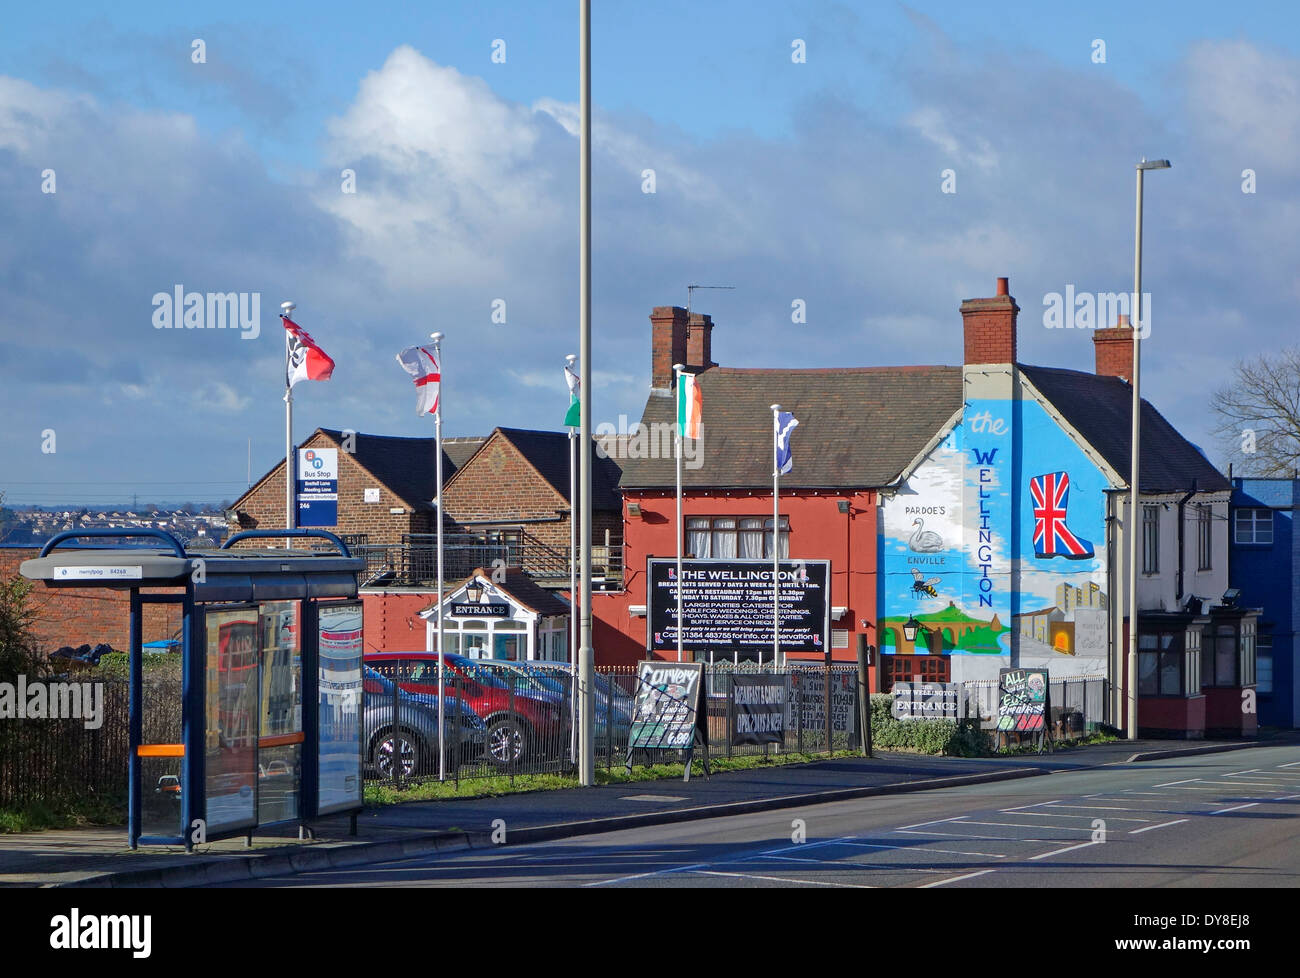 Mural Depicting The Black Country, The Wellington Pub, Brettell Lane ( A461 ), Brierley Hill, West Midlands, England, UK - Stock Image